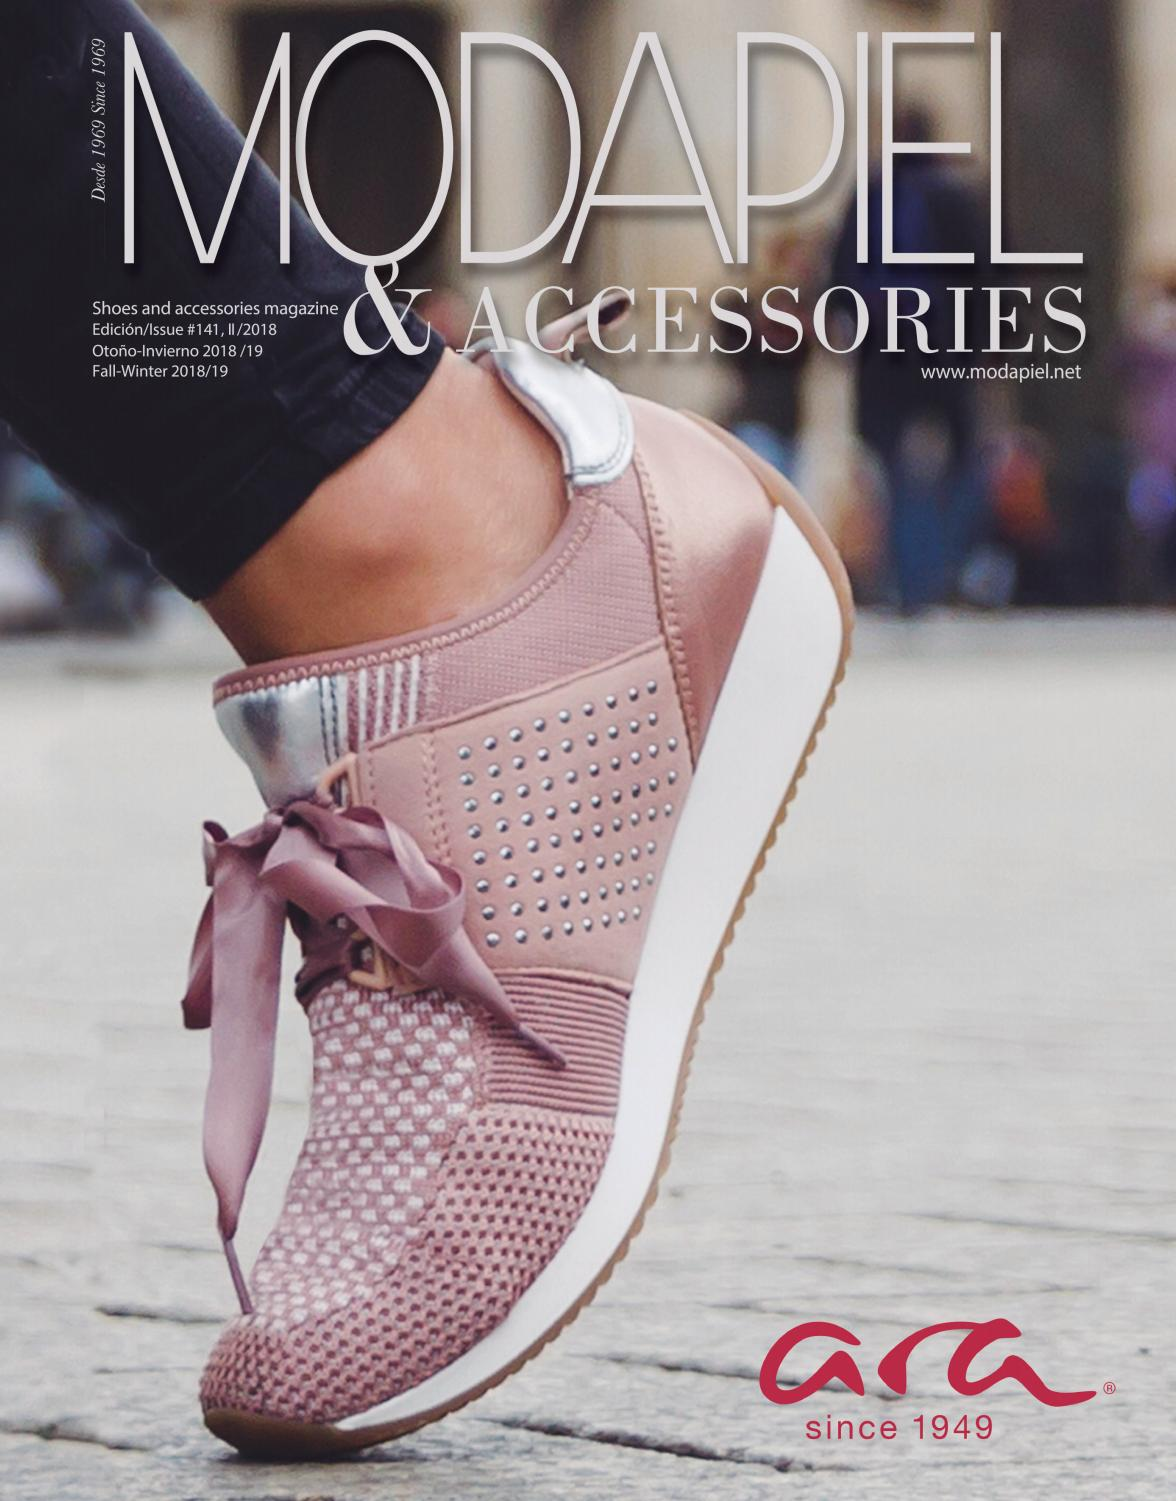 096fe821 Modapiel & Accessories 141 Shoes and accessories magazine by Prensa Técnica  S.L. - issuu